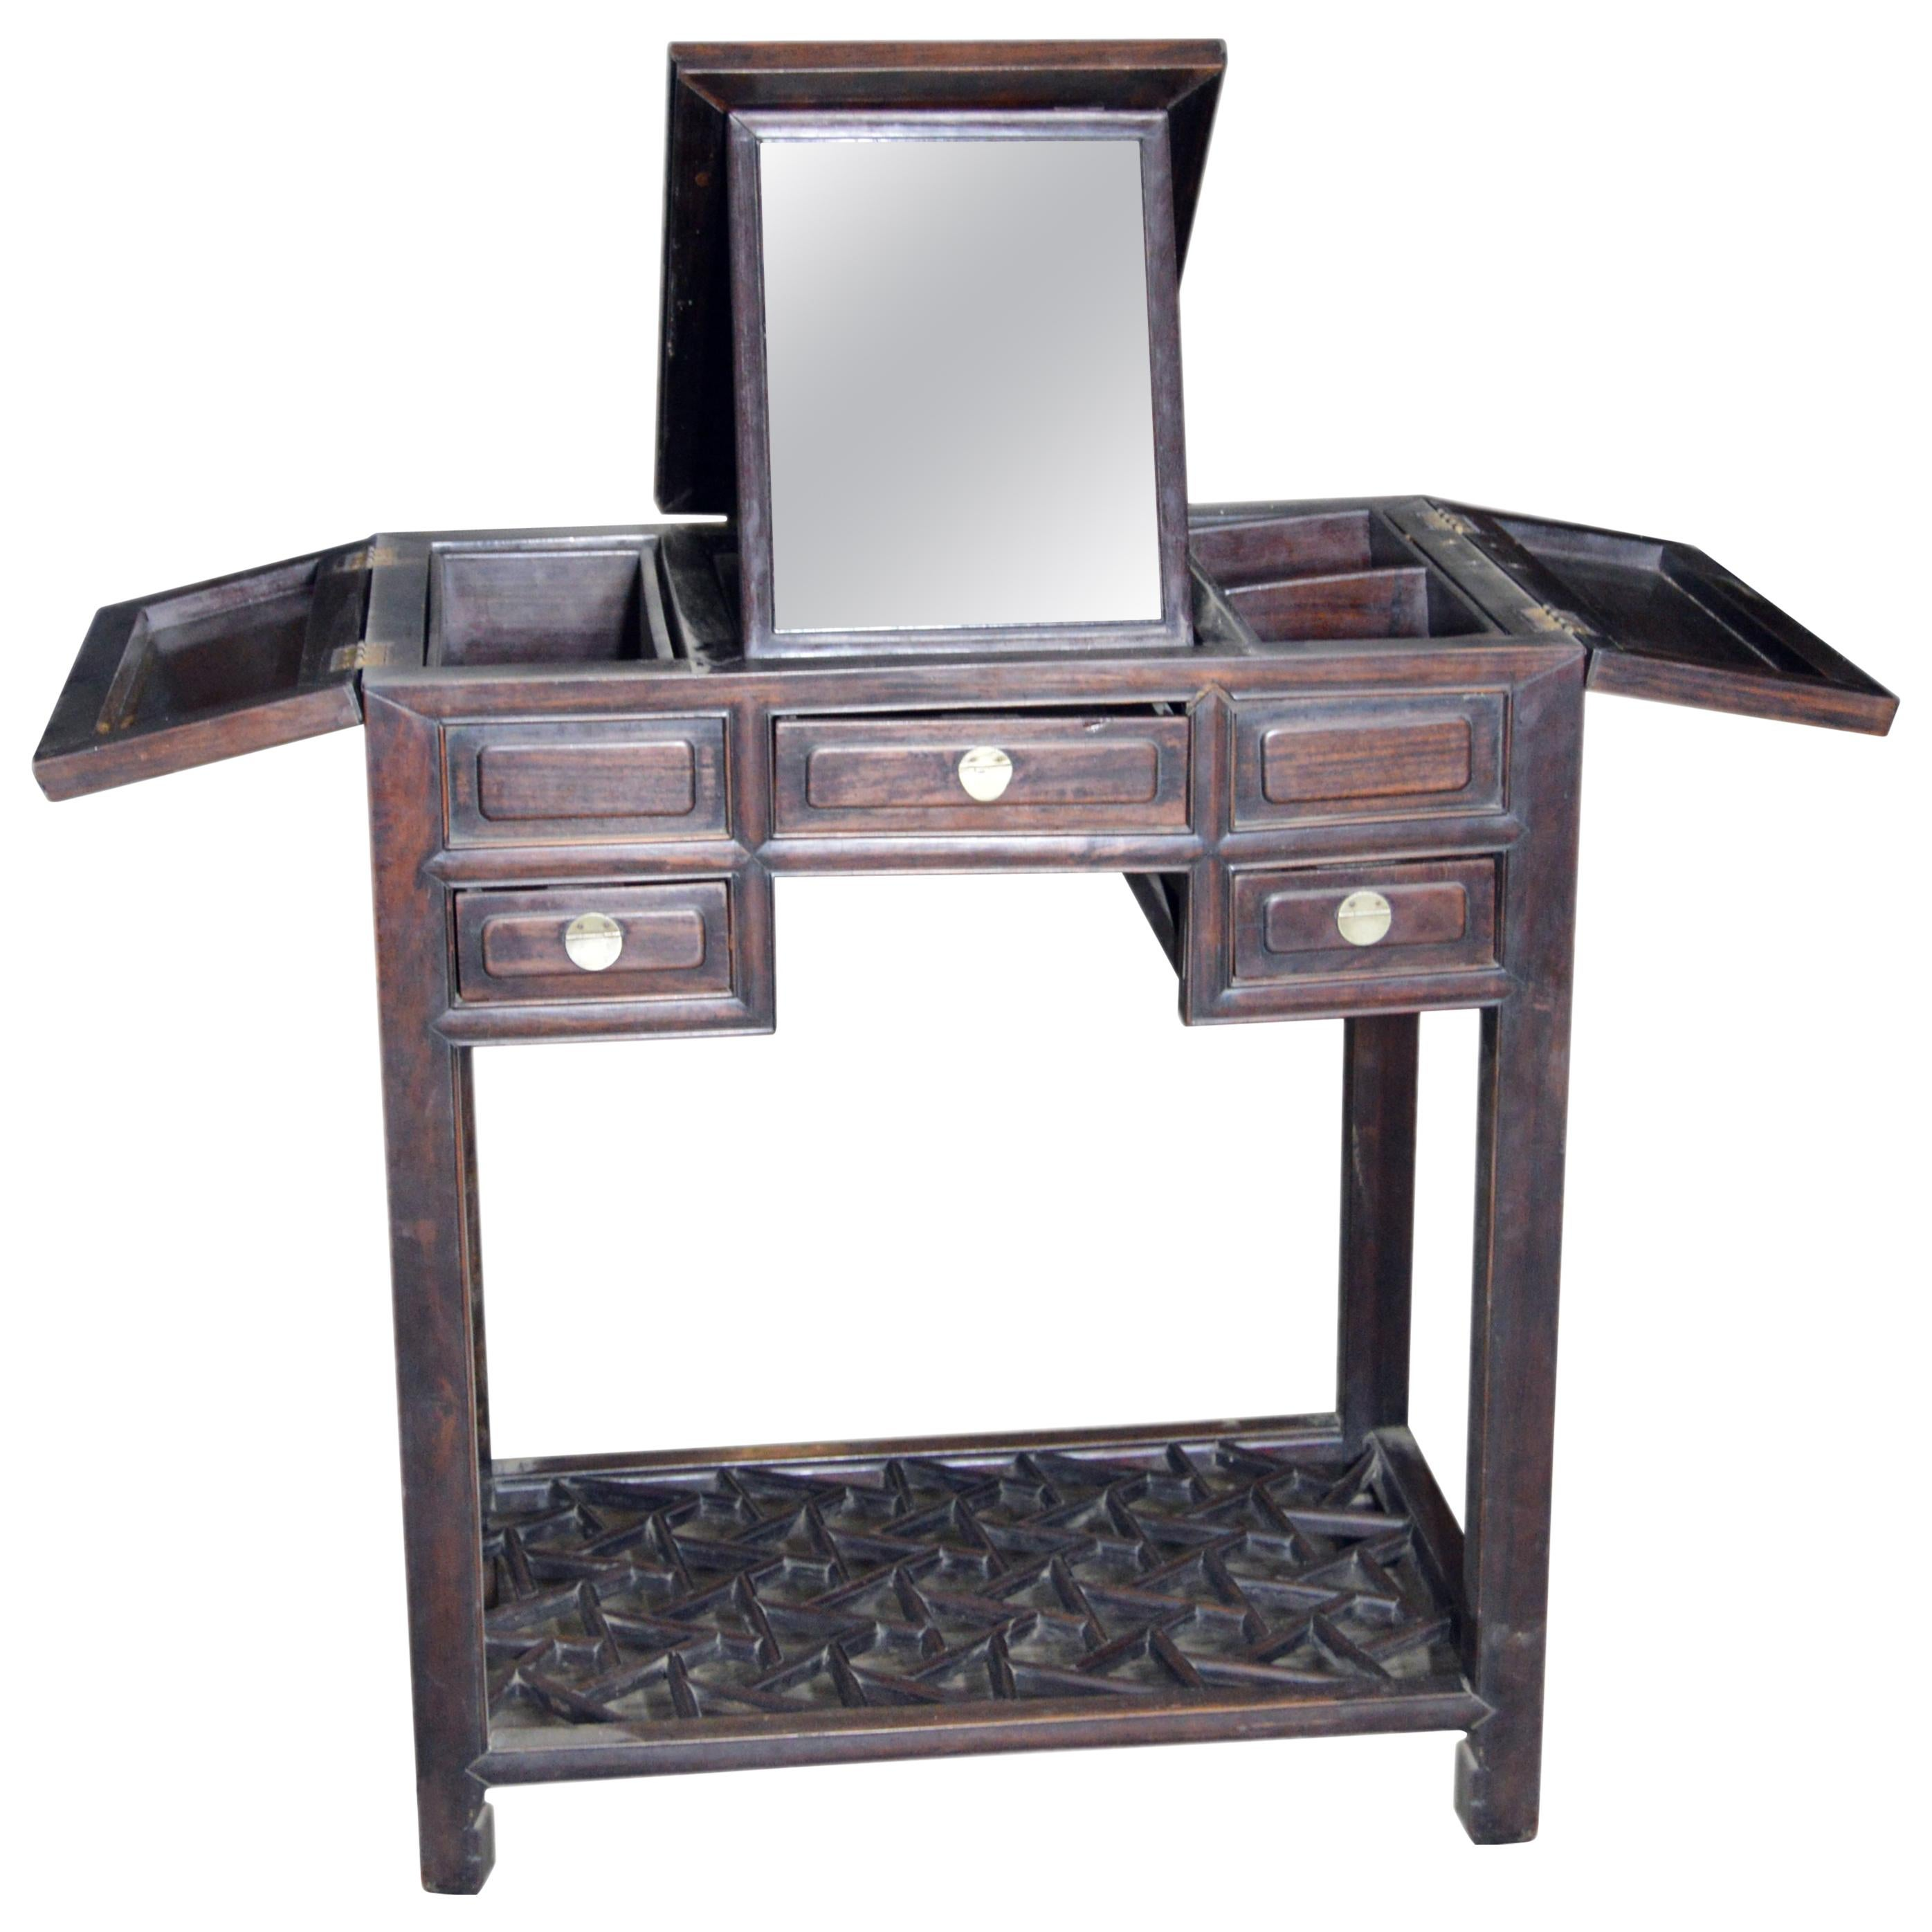 Chinese Vintage Dark Lacquered Wood Dressing Table With Mirror And Drawers